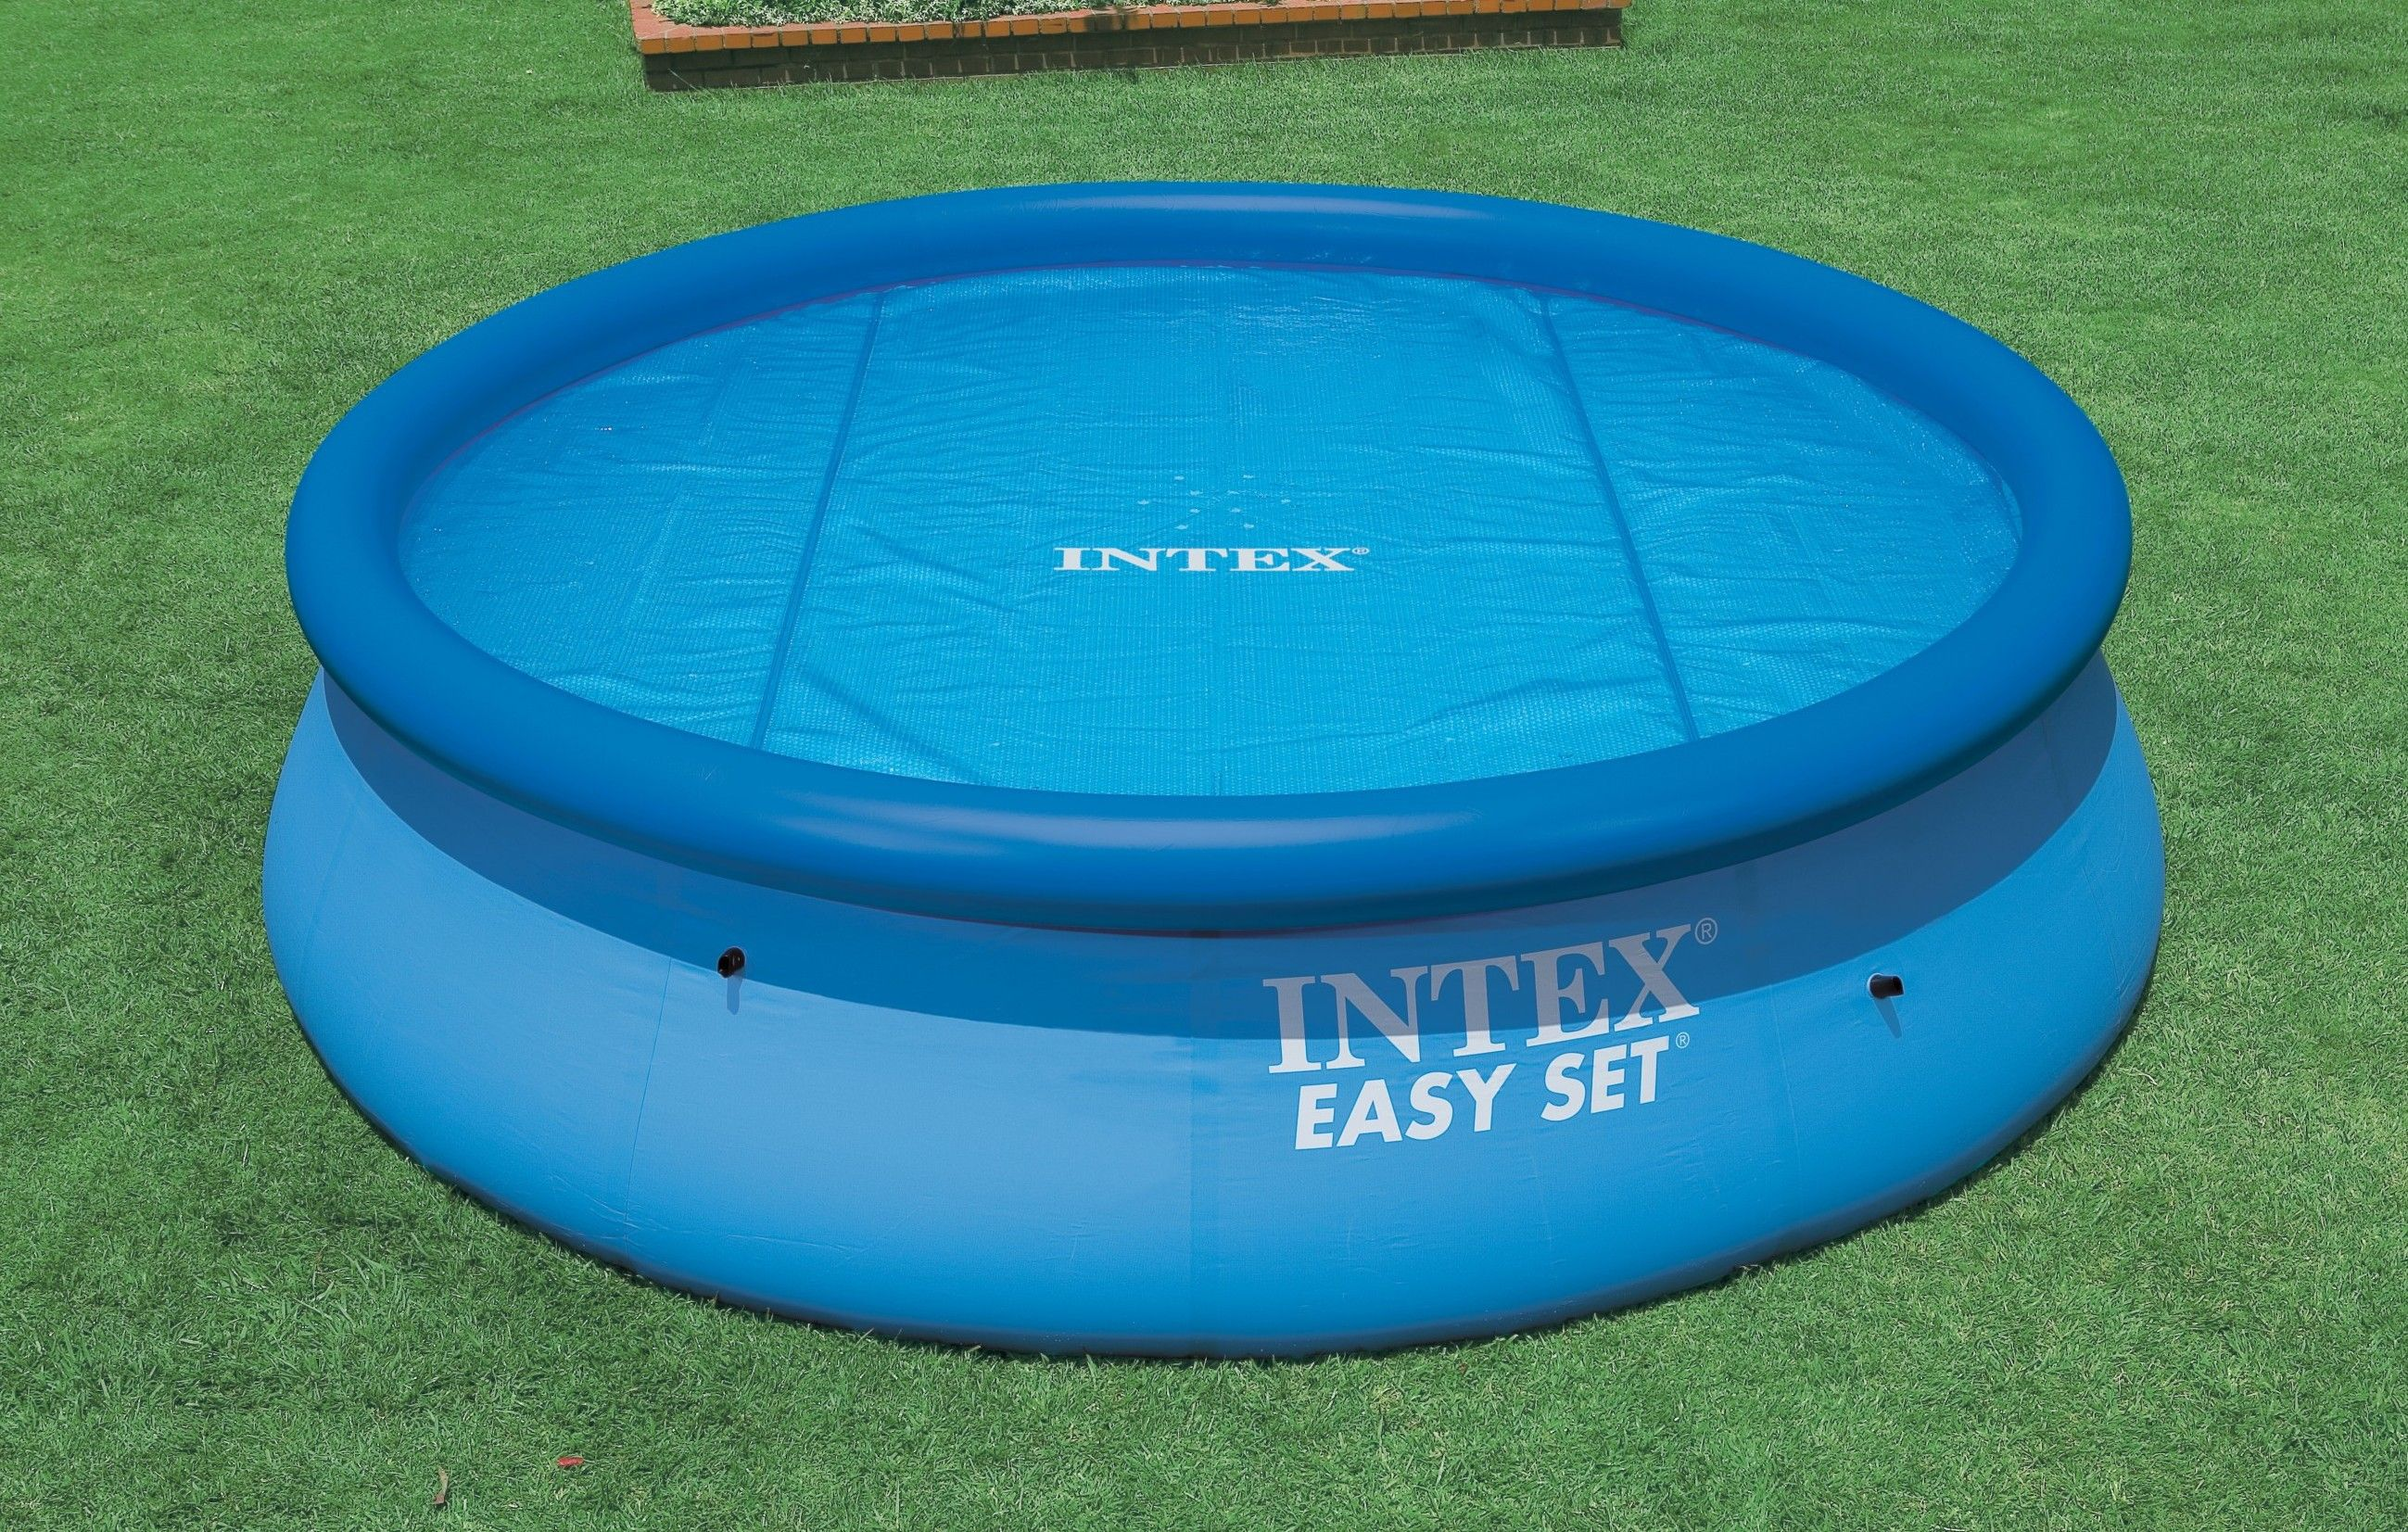 Intex Pool Poolfolie Ersatzfolie Fur Intex Easy Frame Pool 305 Cm Solar Pool Cover Solar Pool Swimming Pool Solar Heating